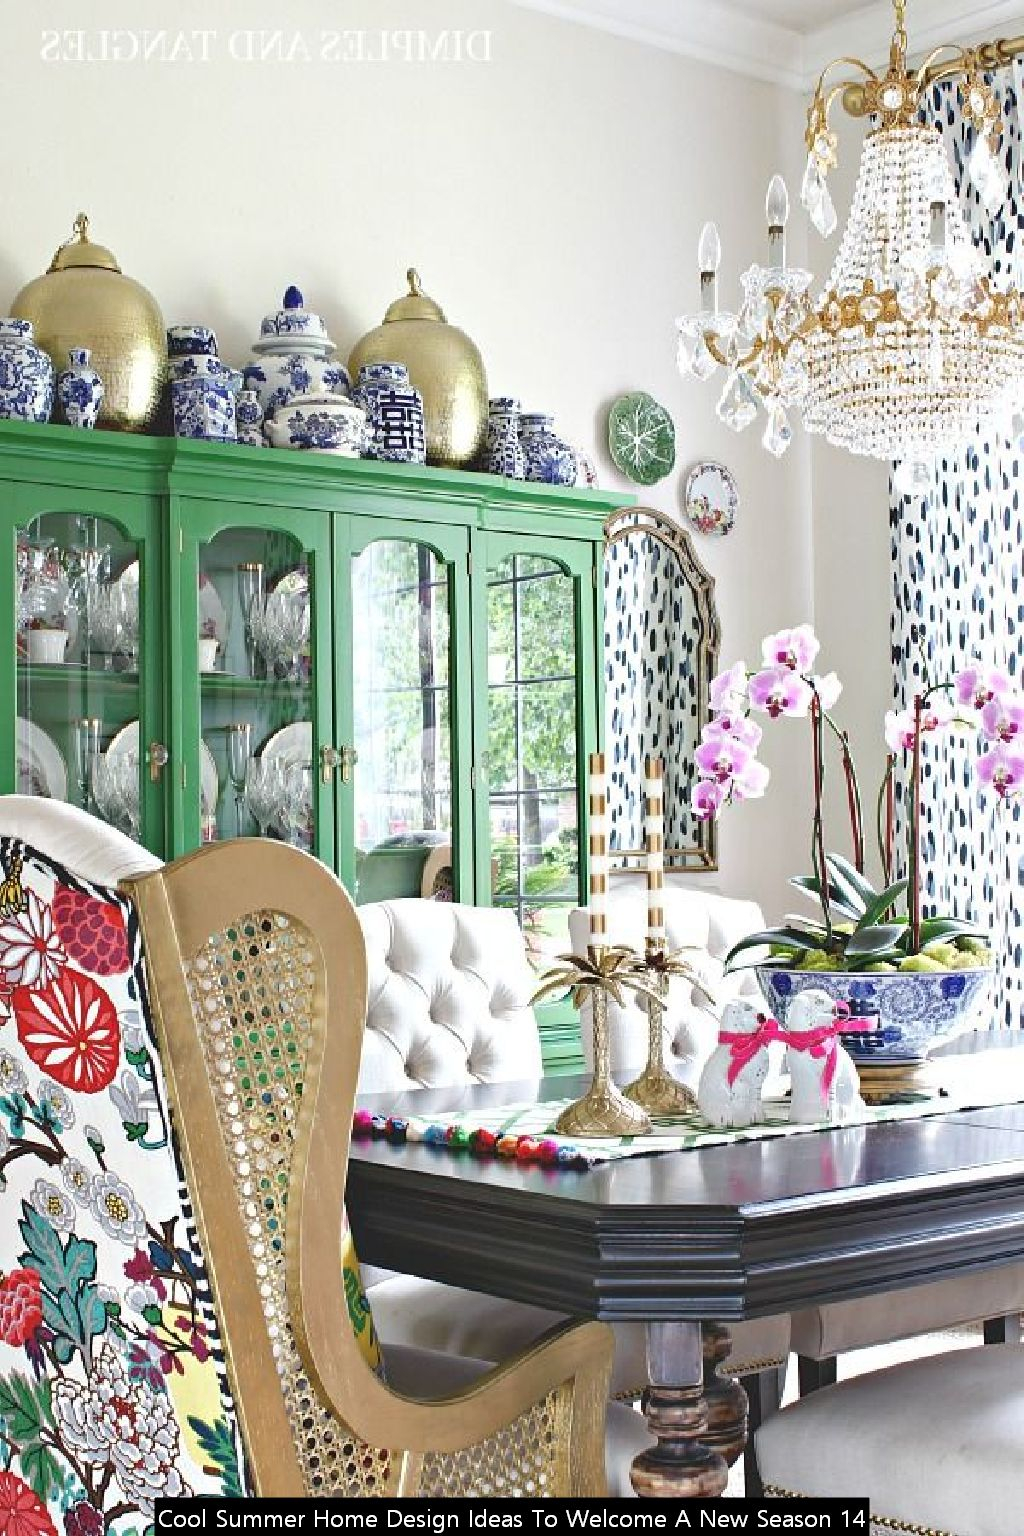 Cool Summer Home Design Ideas To Welcome A New Season 14